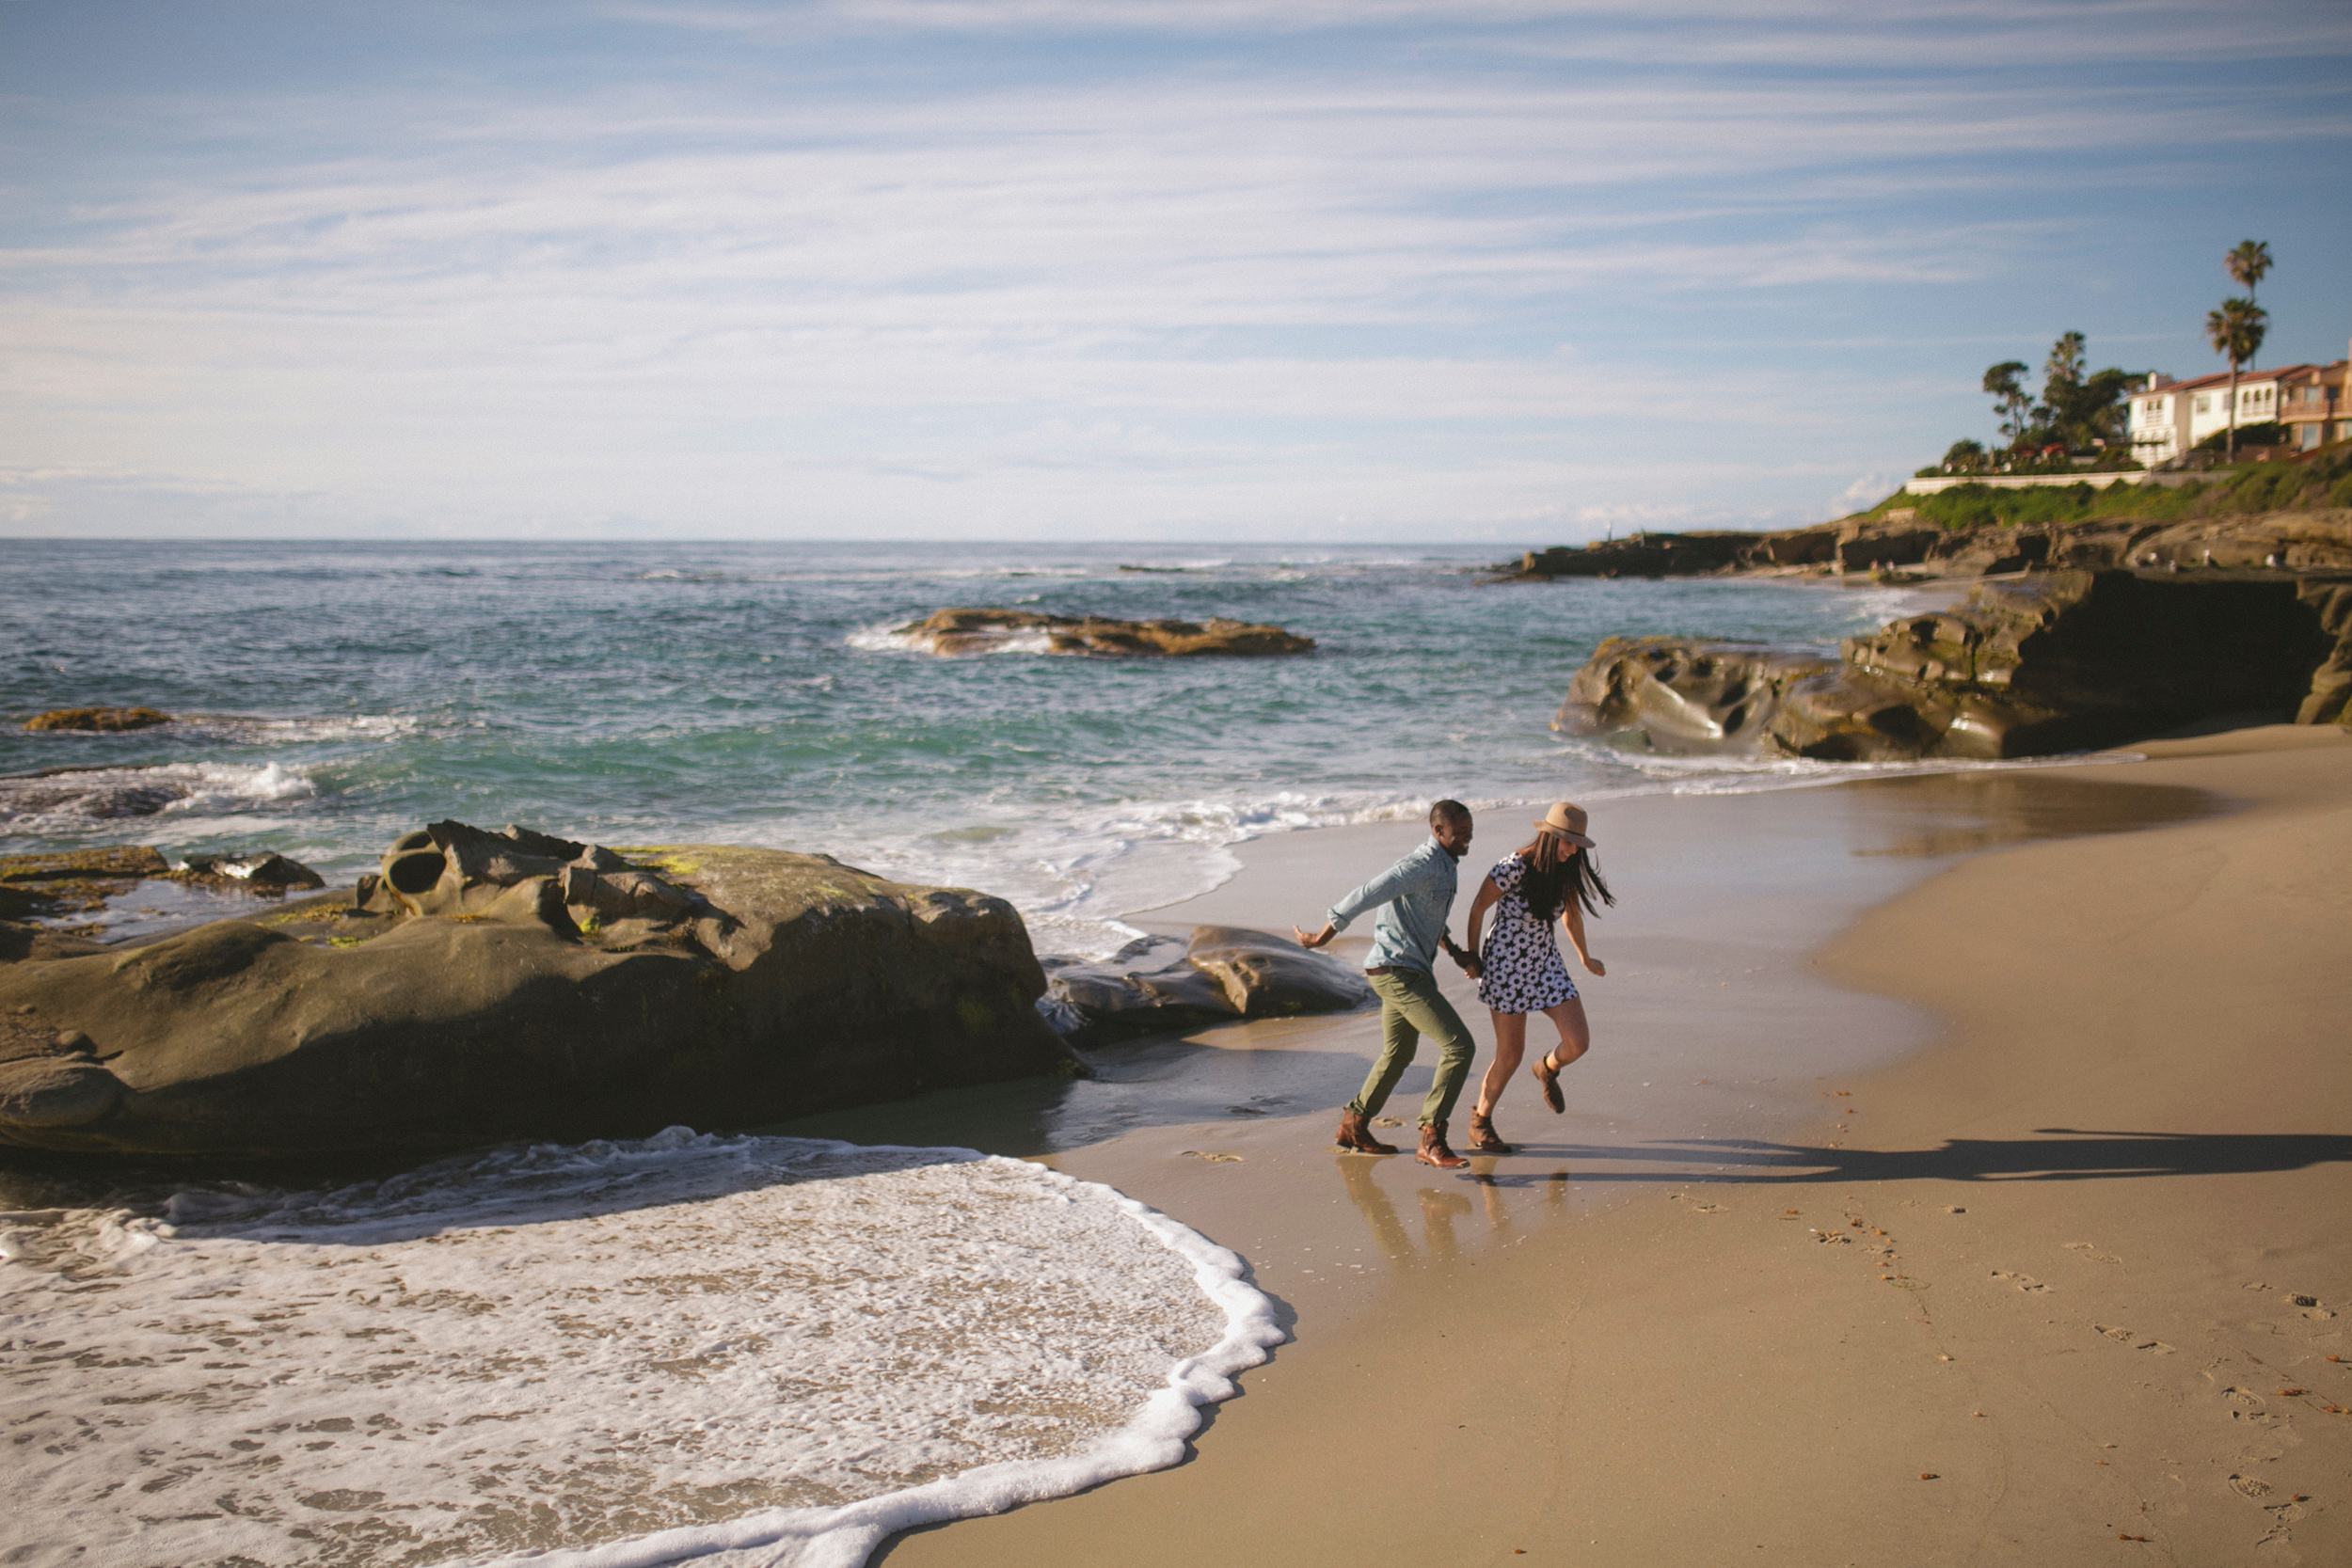 Colby-and-Jess-Adventure-Engagement-Photography-Torrey-Pines-La-Jolla-California74.jpg